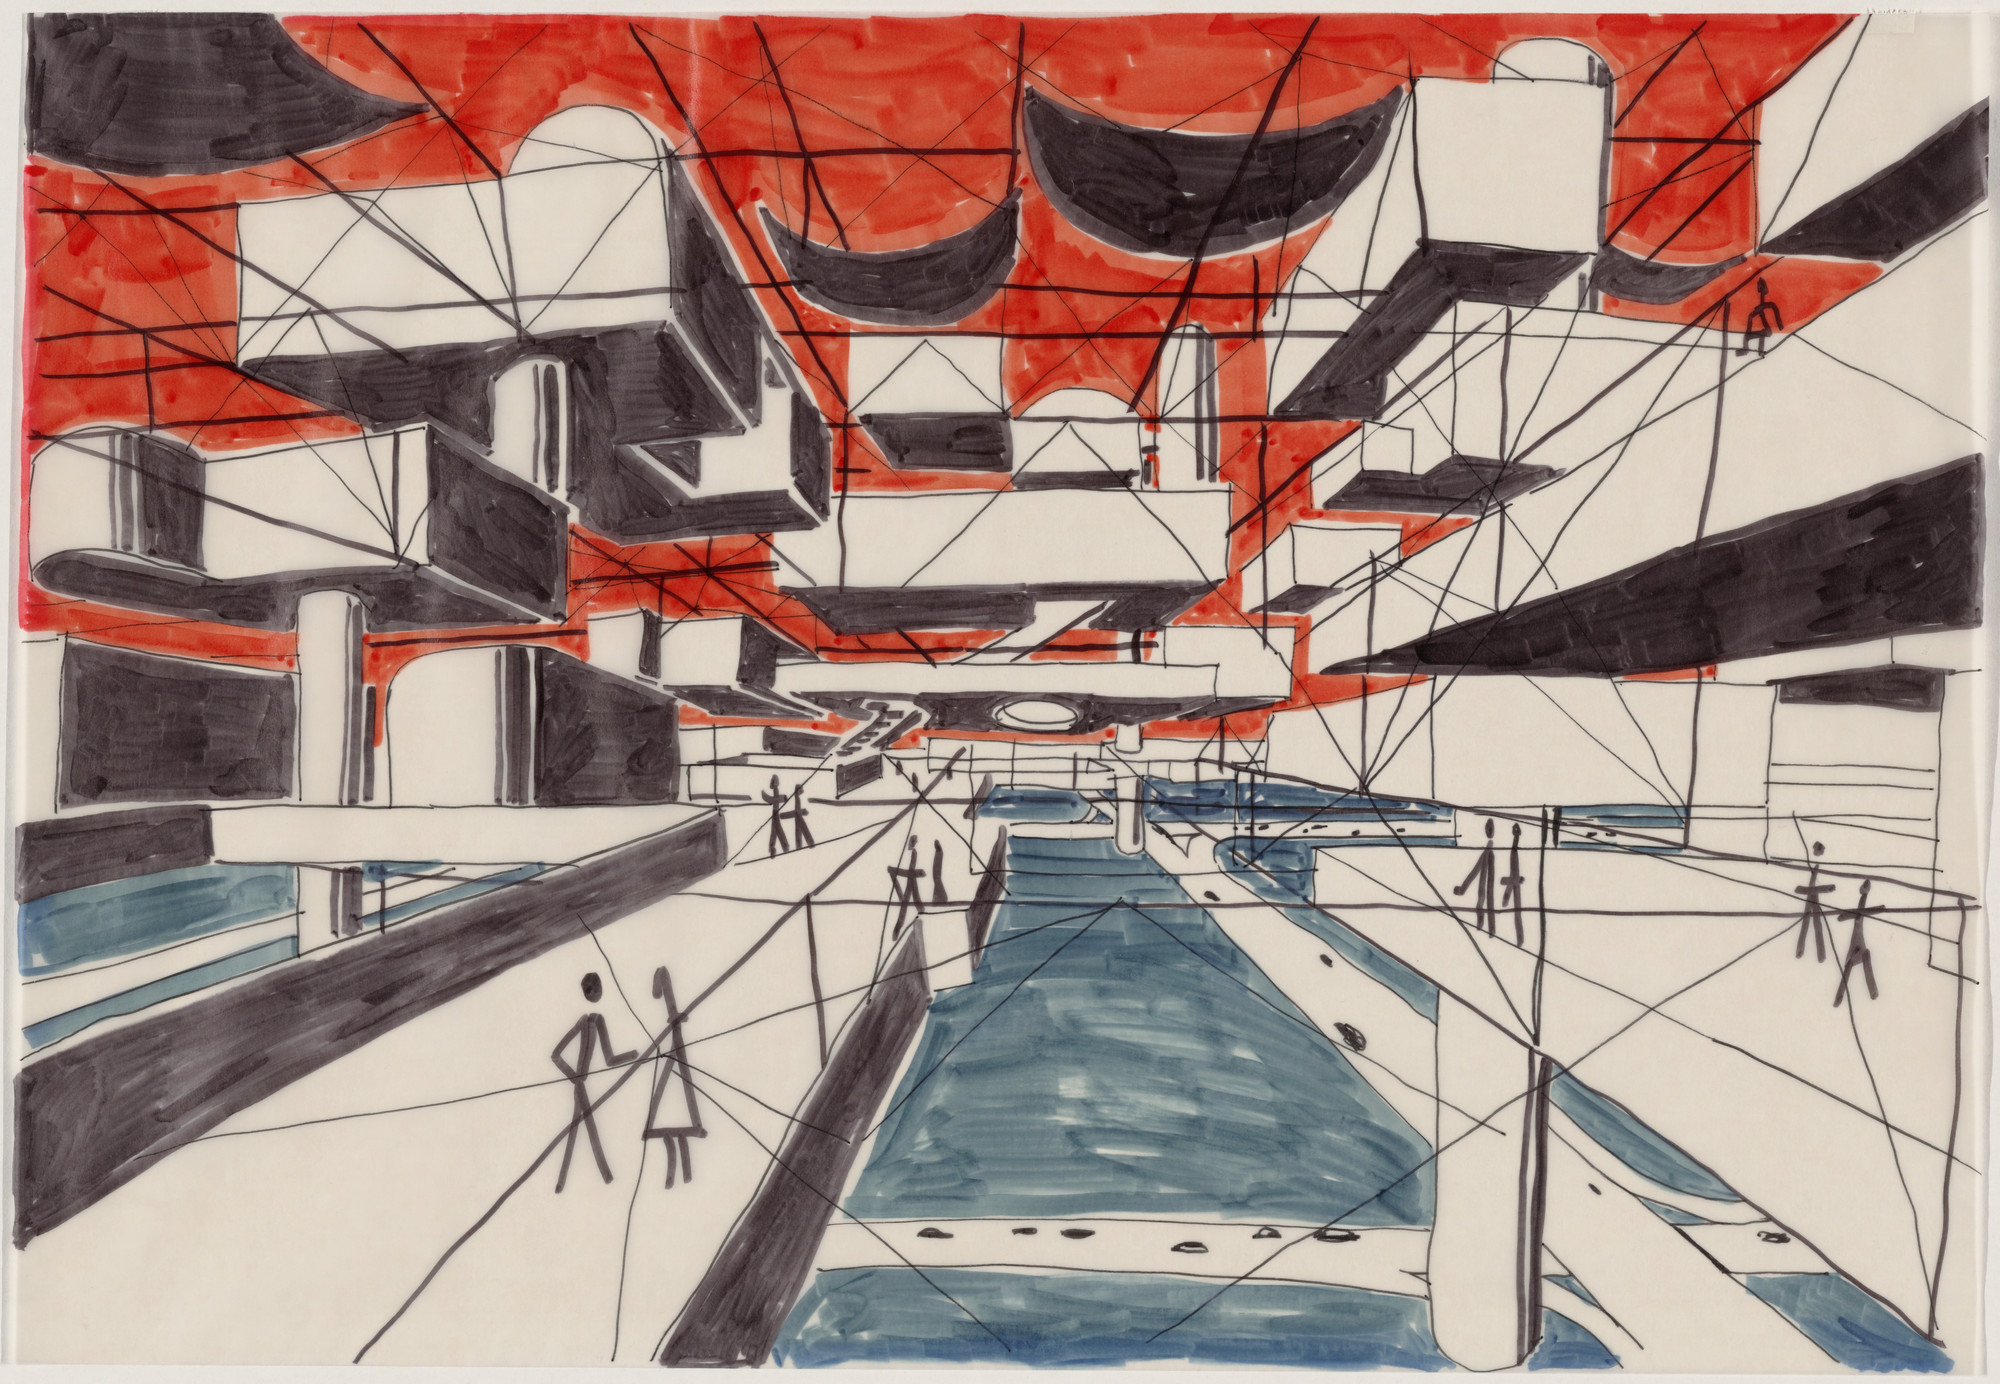 Yona Friedman. Spatial City Project (Perspective). 1958-59